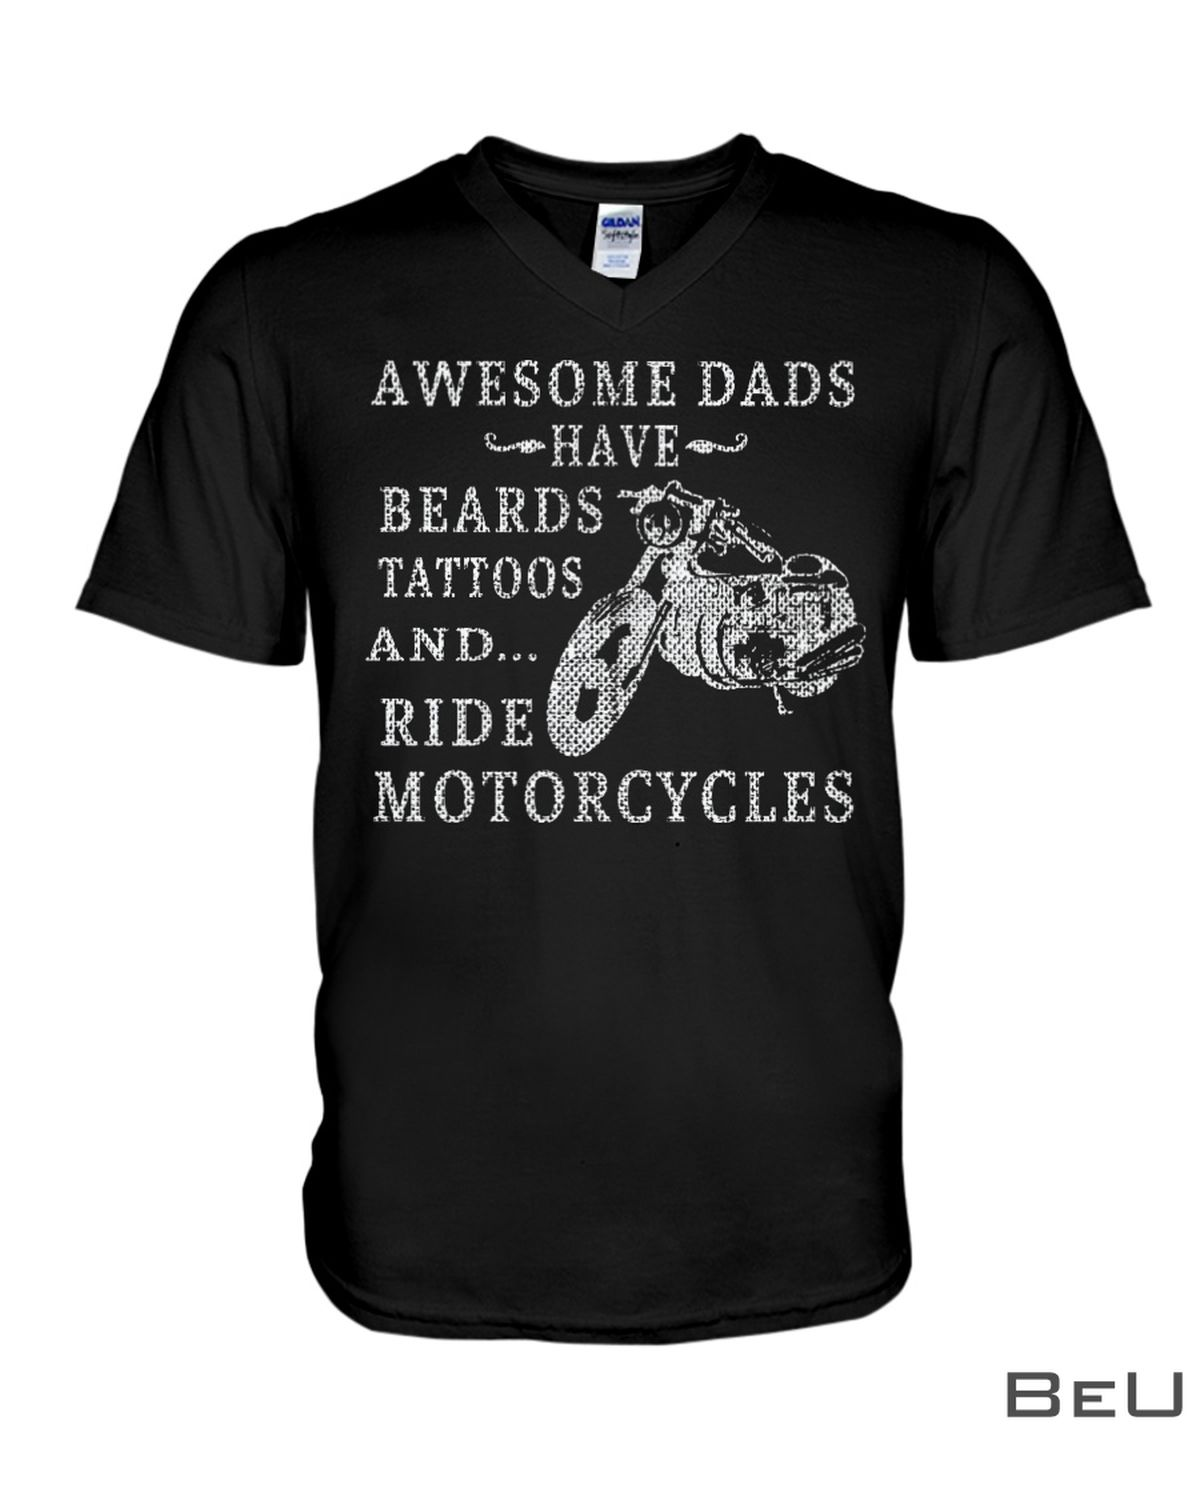 Awesome Dads Have Beards And Tattoos And Ride Motorcycles Shirtx